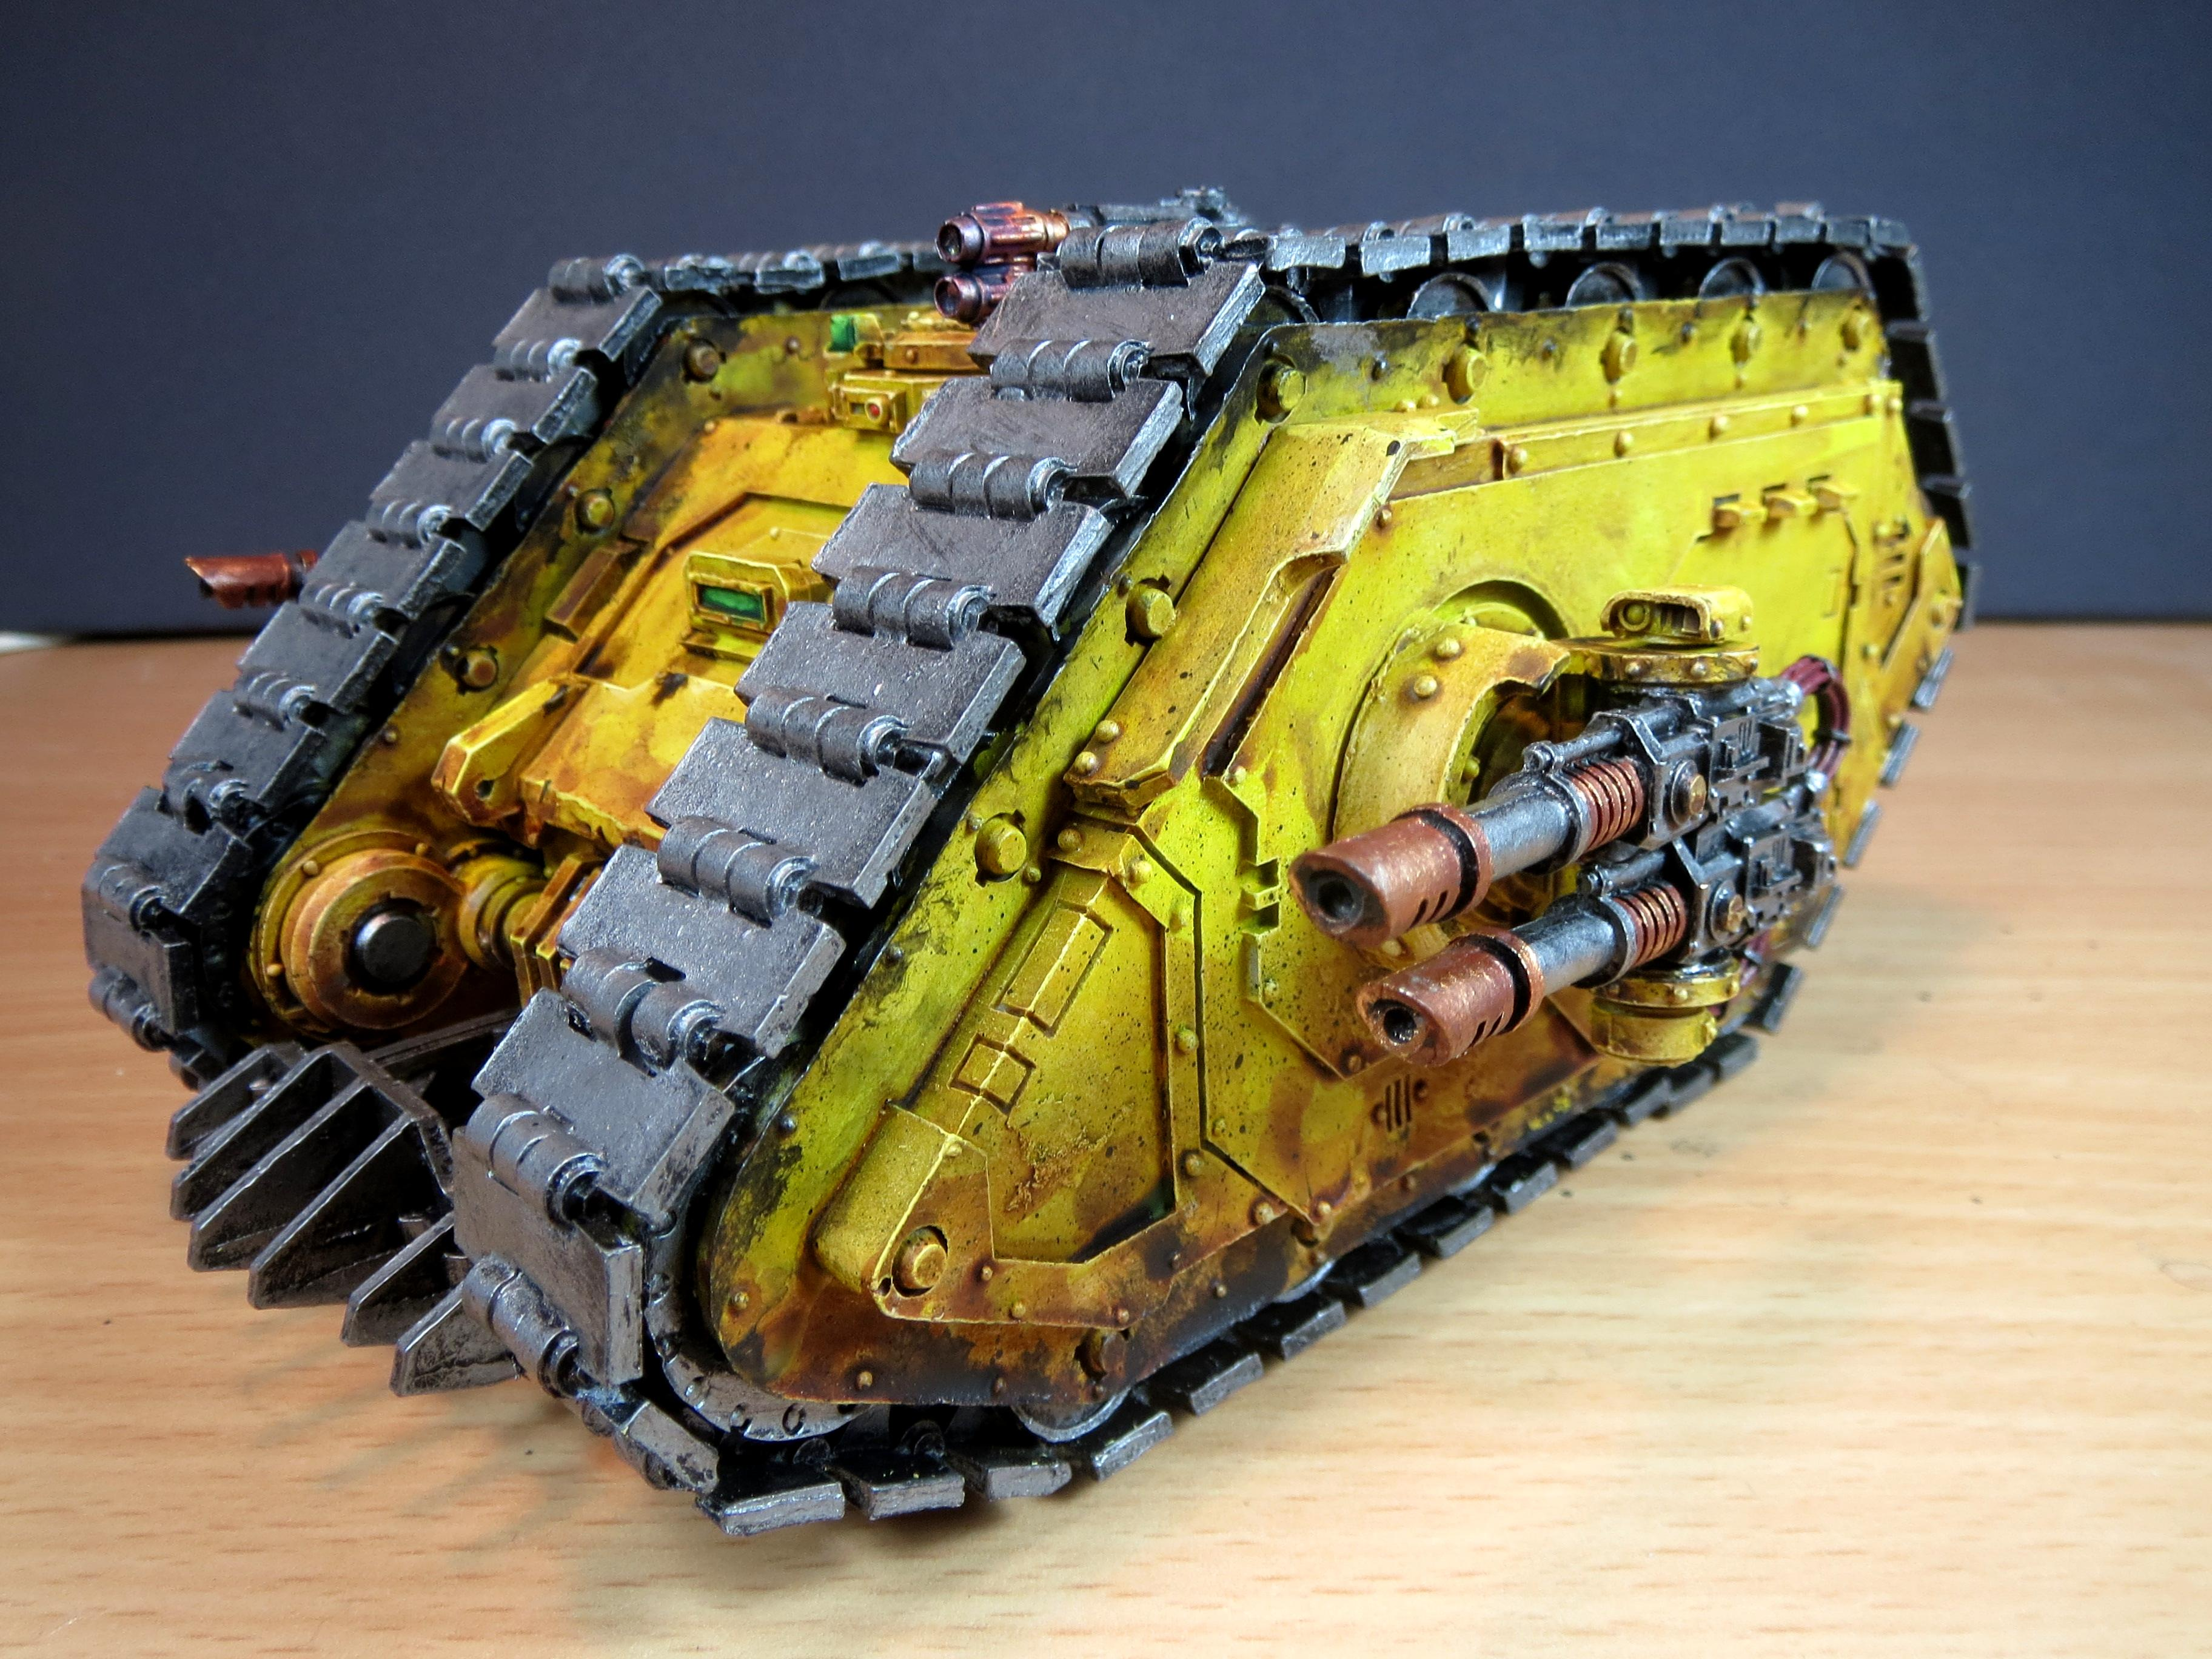 Fists, Forge World, Horus Heresy, Imperial, Imperial Fists, Land Raider, Weathered